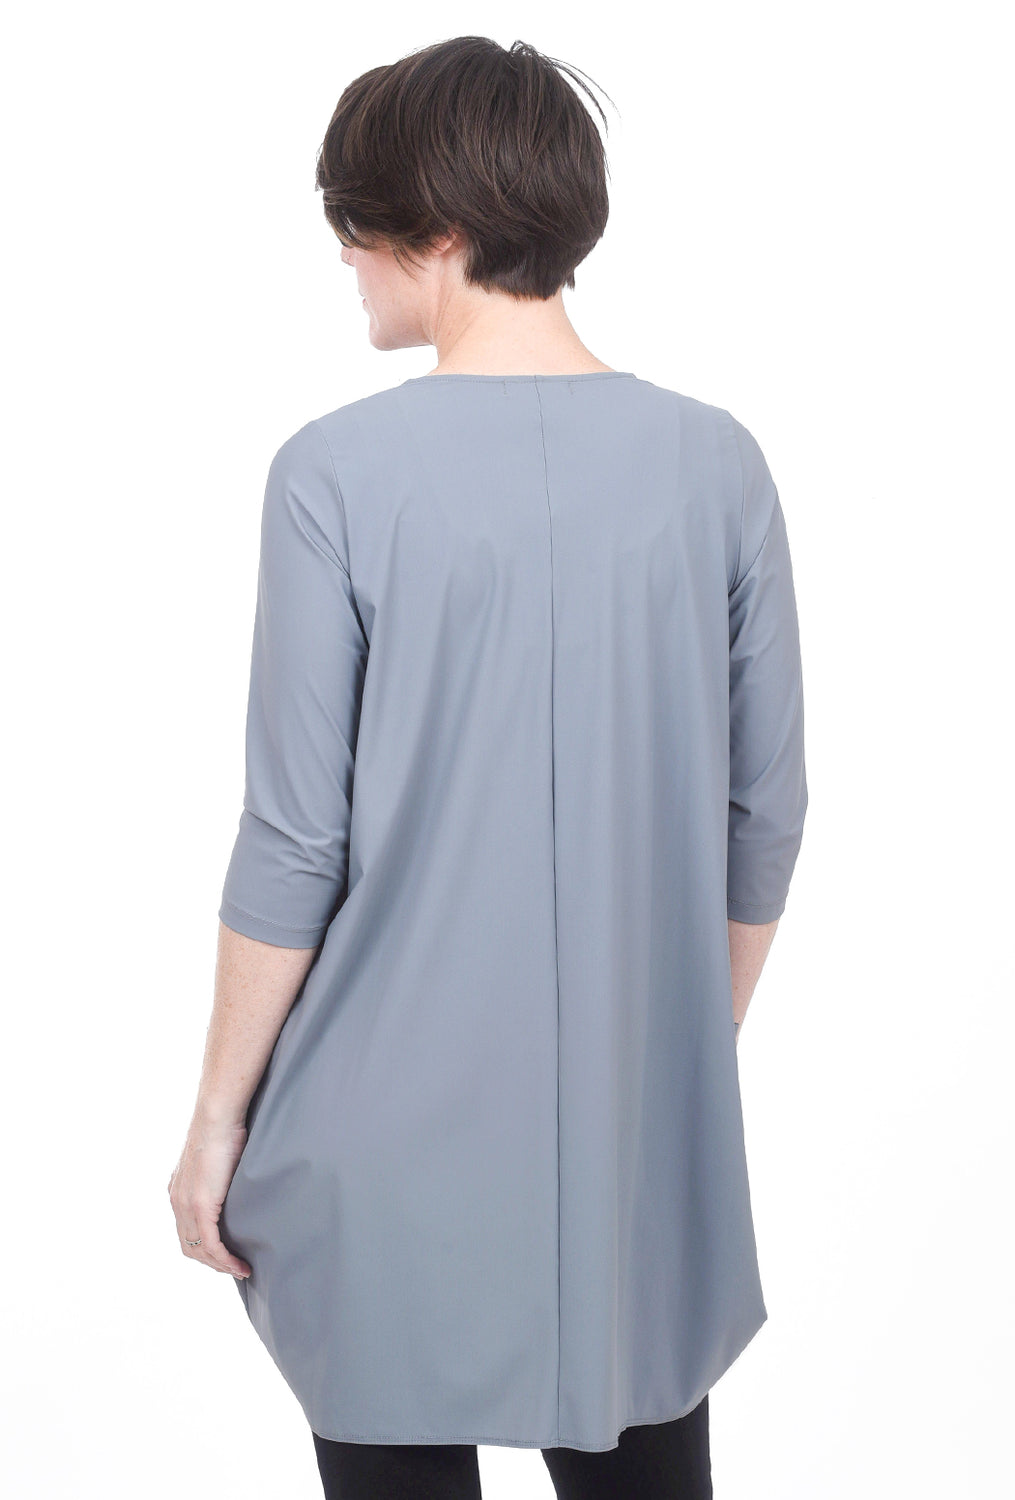 Jason by Comfy USA Portofino Tunic, Dove